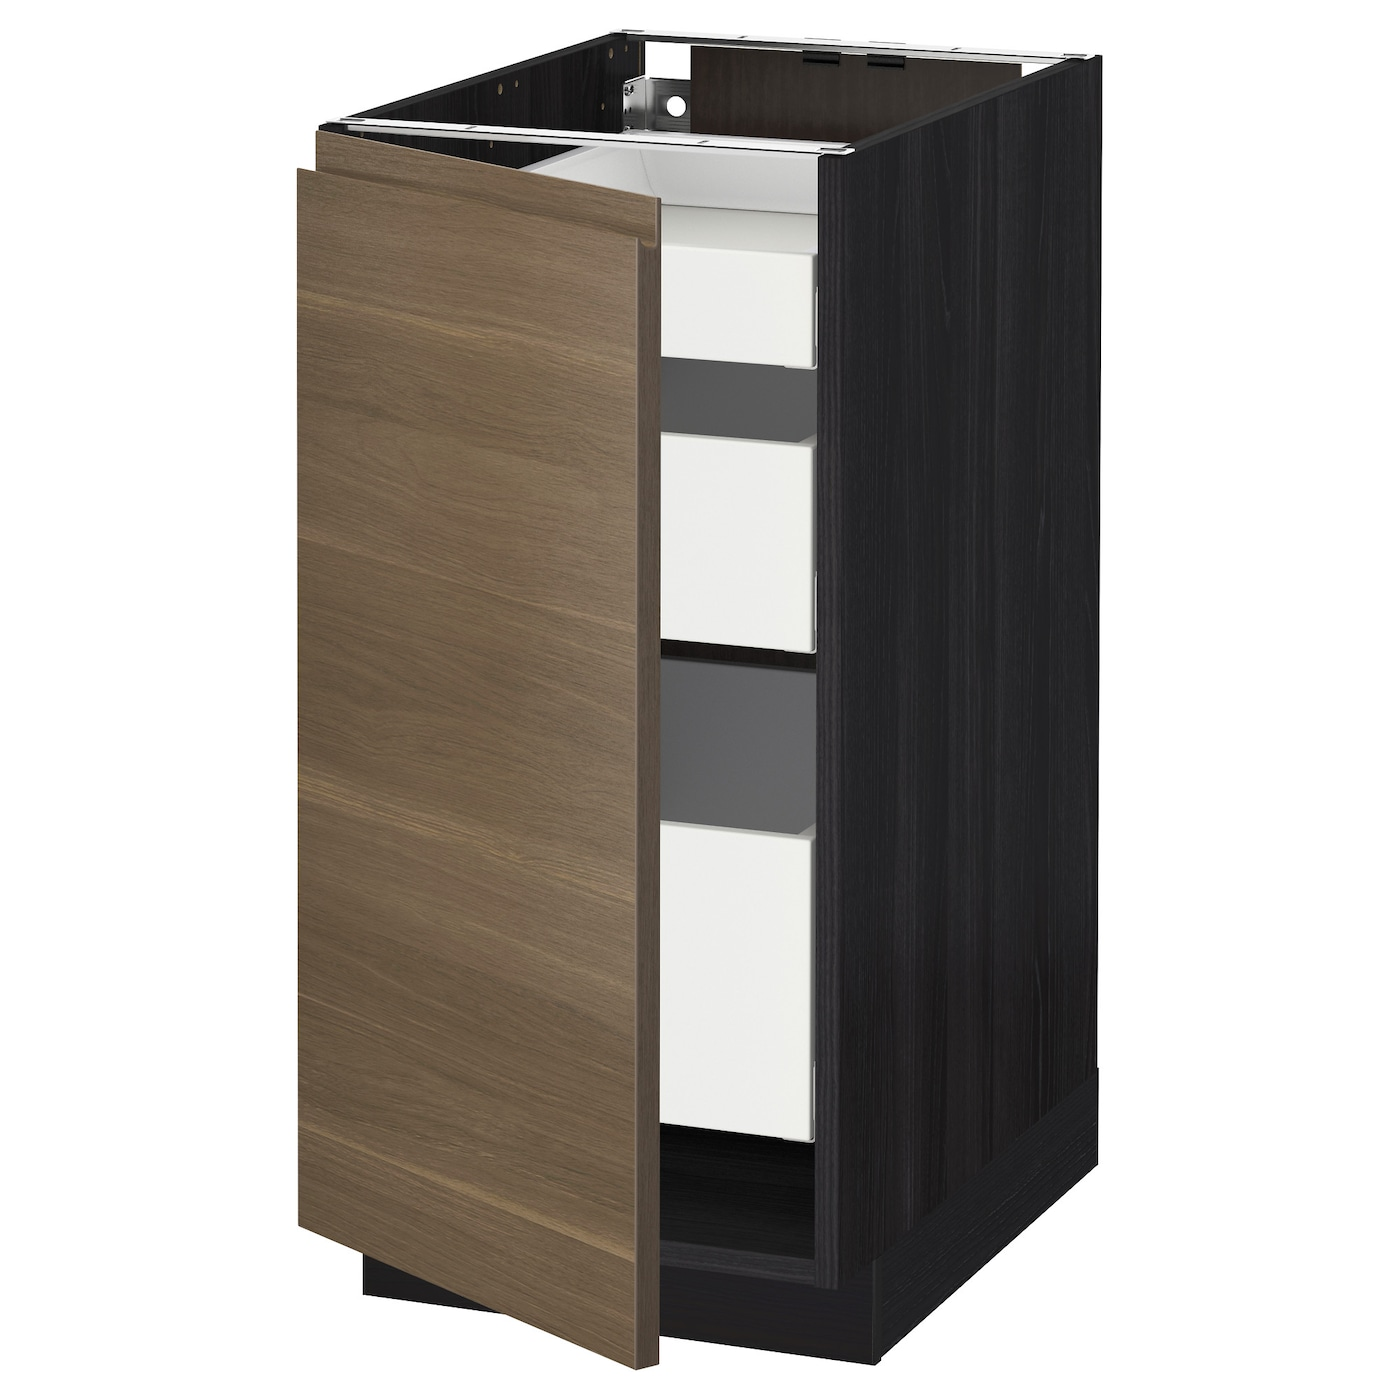 Metod maximera base cabinet with 1 door 3 drawers black for Black kitchen base cabinets